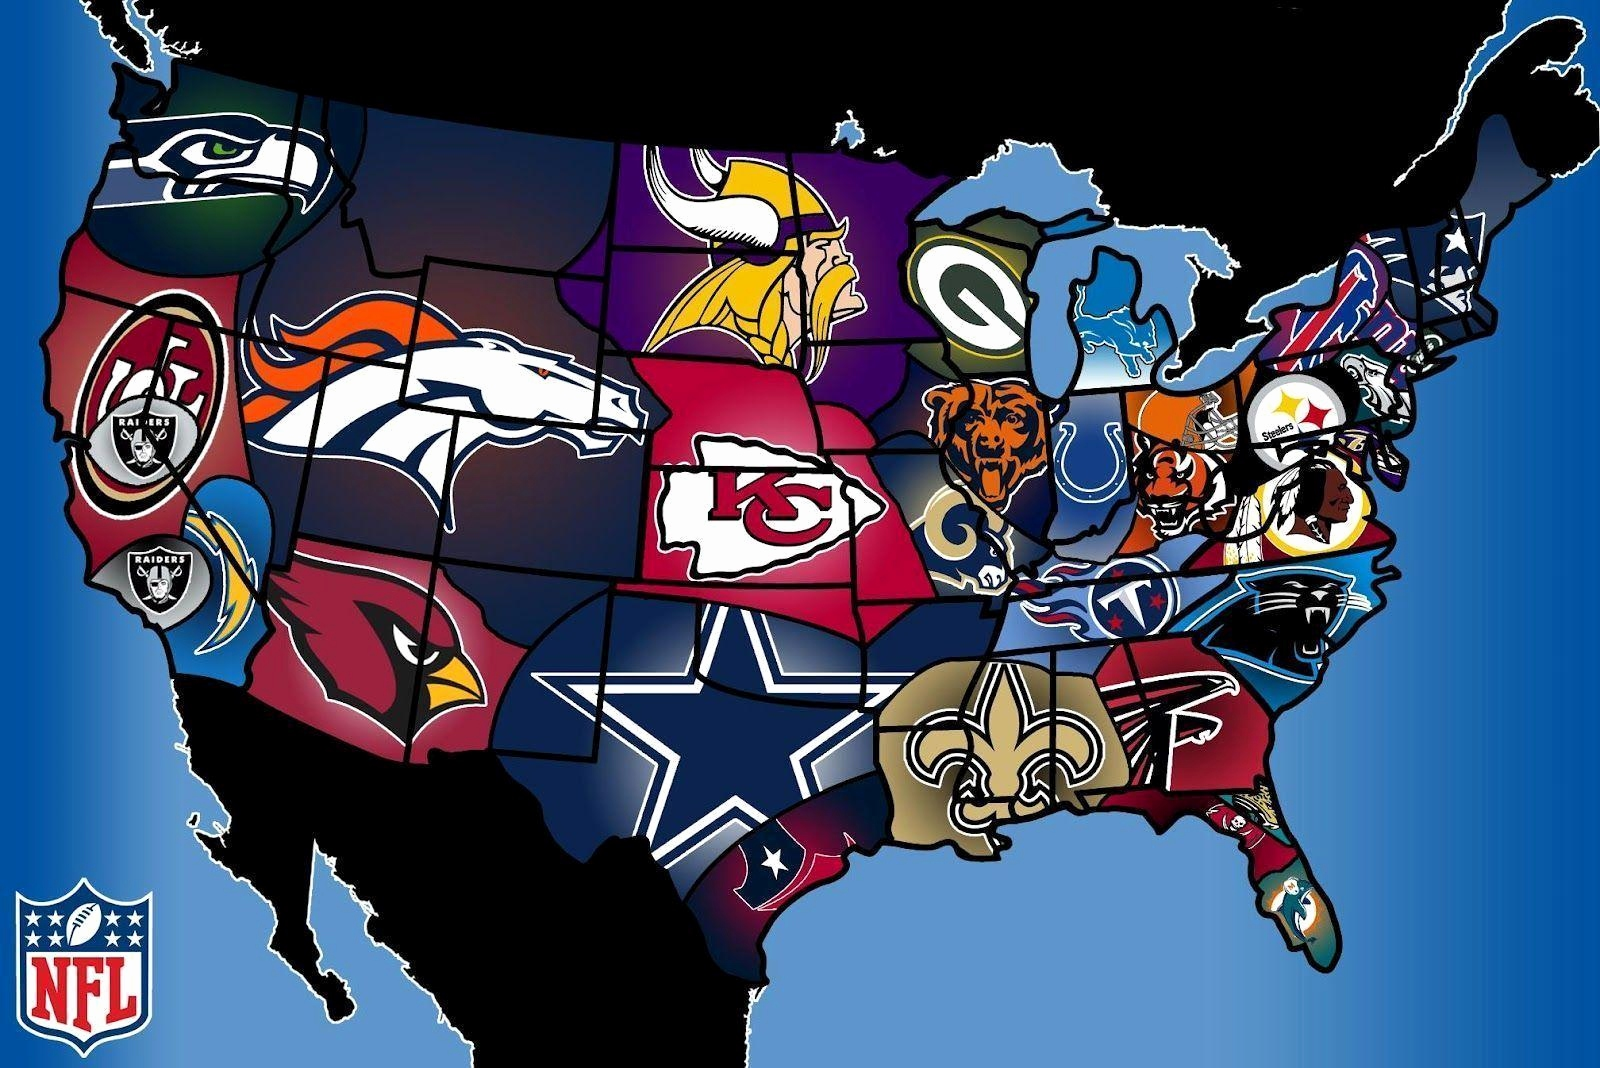 Nfl Team Logos Wallpaper Awesome Nfl Teams Wallpapers 2016.